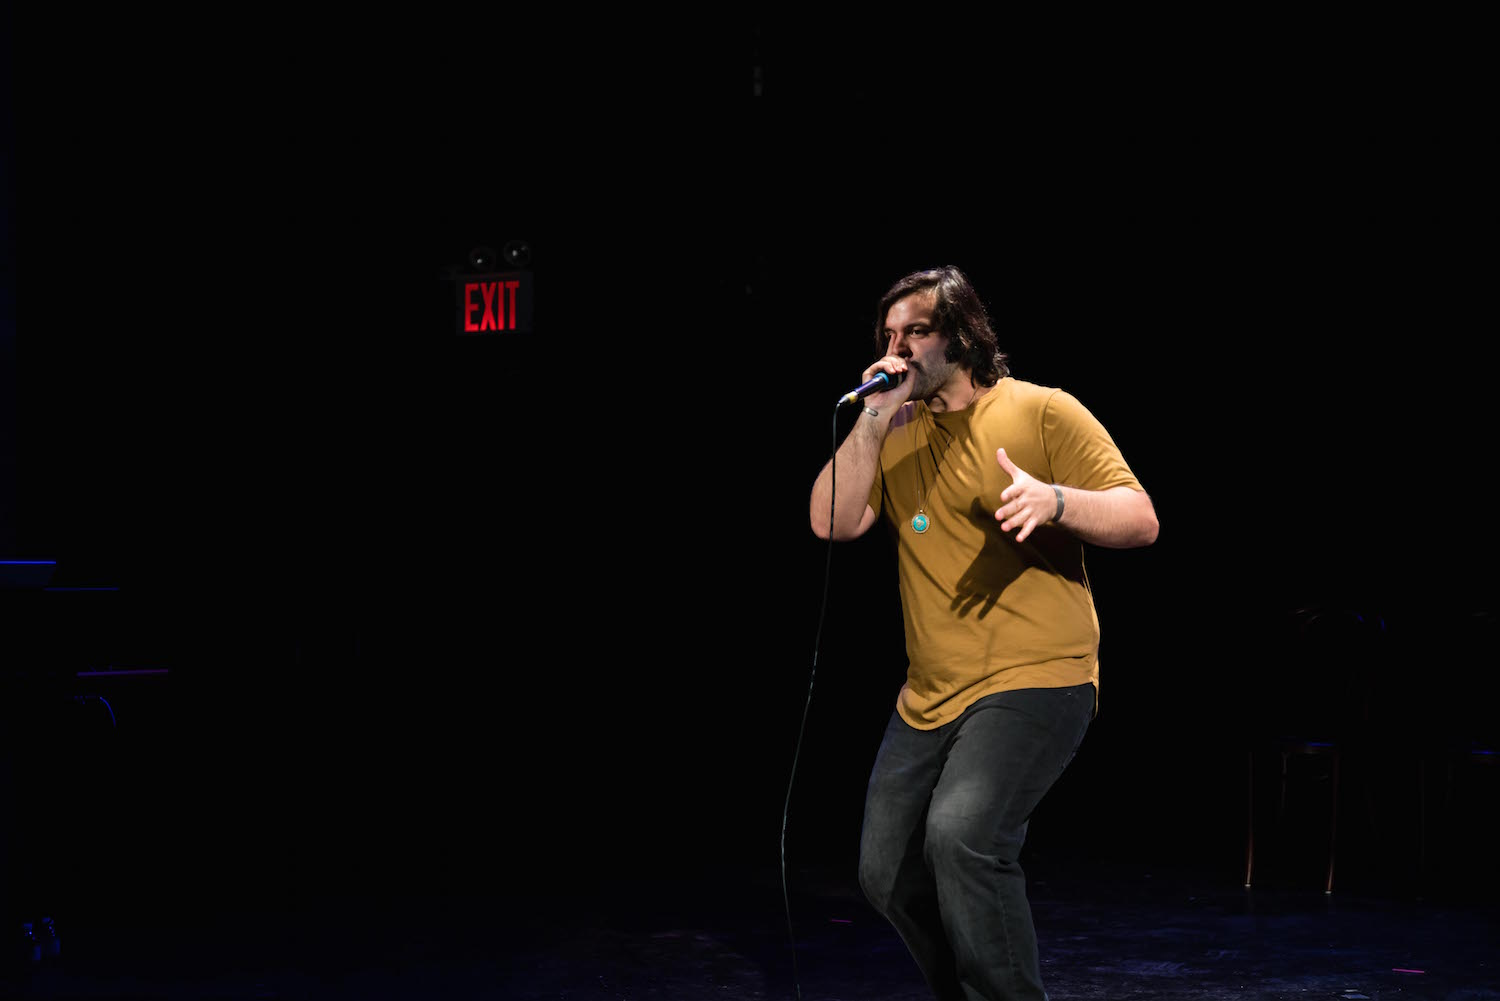 Timeoutny.com - From a year of awesome comedy, we picked the 10 shows that, even in such a talented and crowded field, stood head and shoulders above the rest.